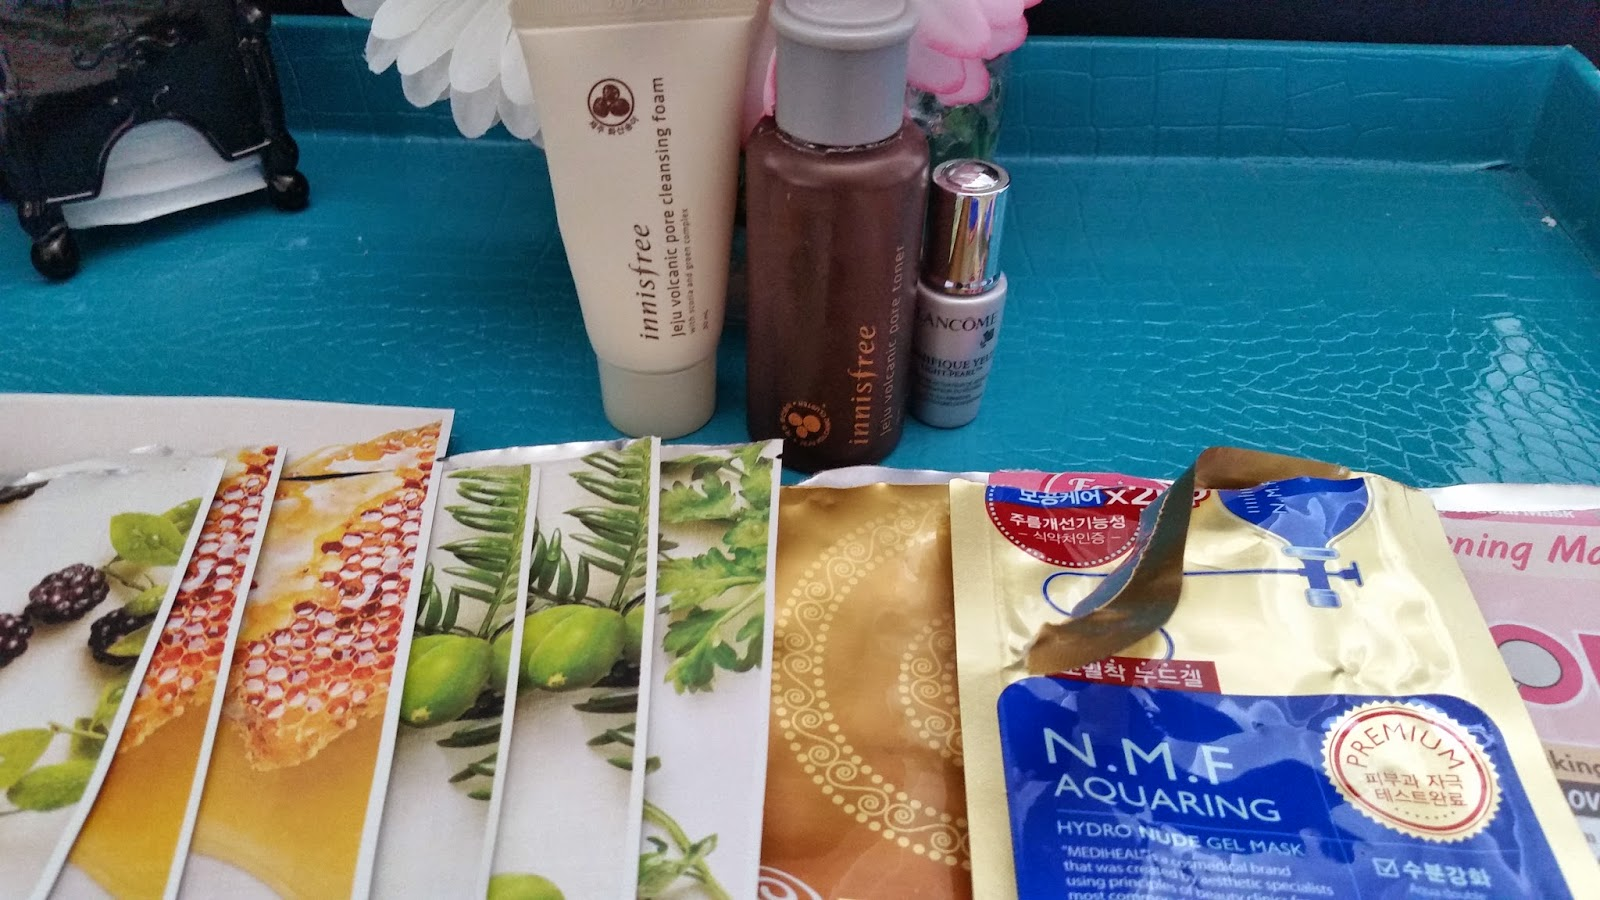 January 2015 Empties!